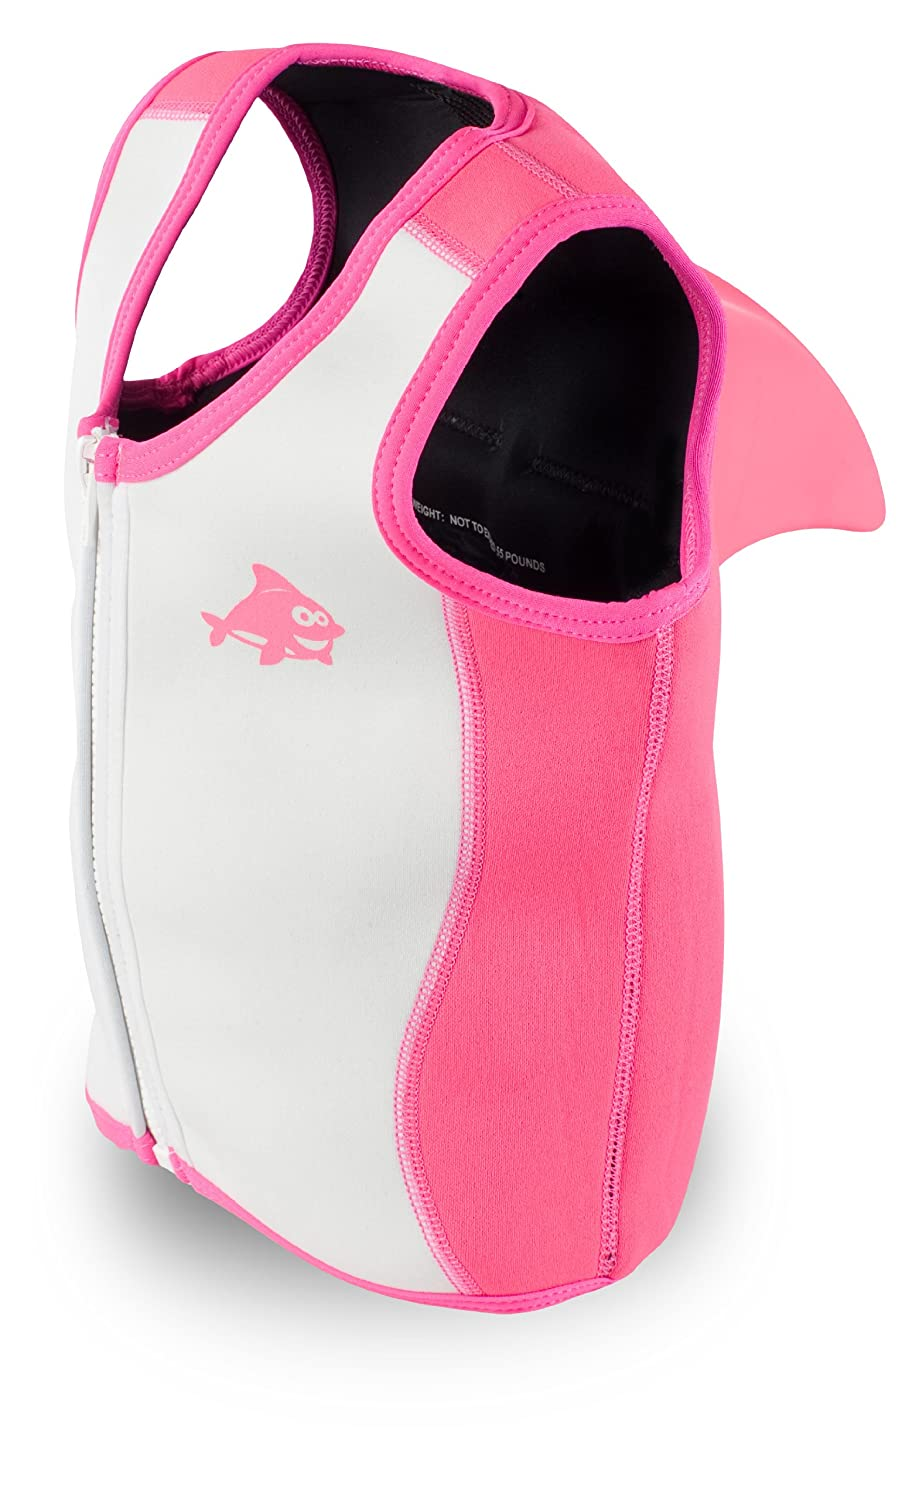 Swimways Sea Squirts Dolphin Swim Assist Vest